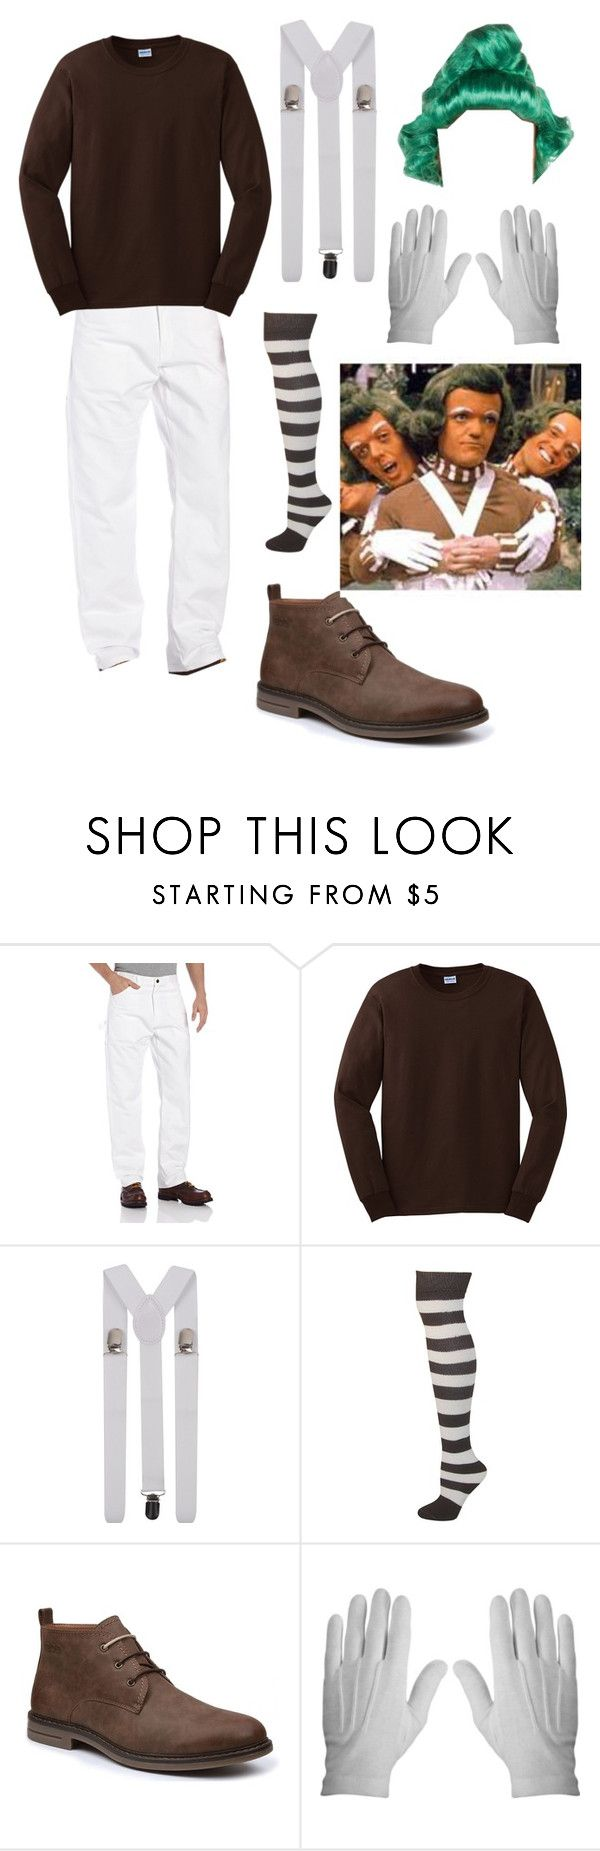 """Men's Oompa Loompa Costume"" by itsafabulouslife ❤ liked on Polyvore featuring men's fashion and menswear"